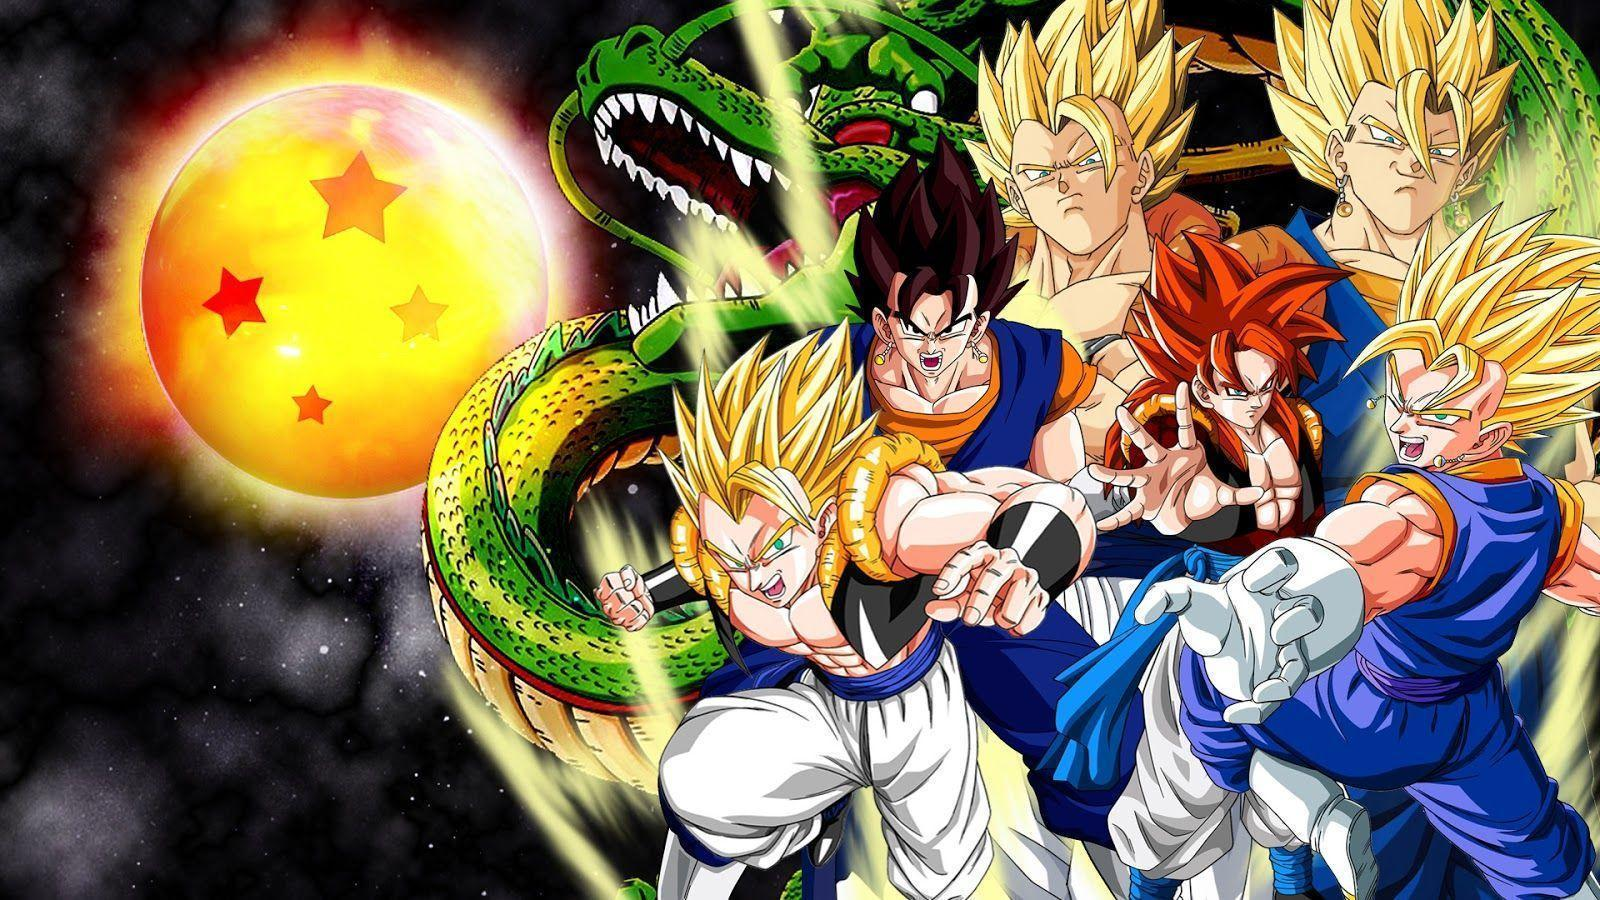 Dragon Ball Z Wallpaper For Android